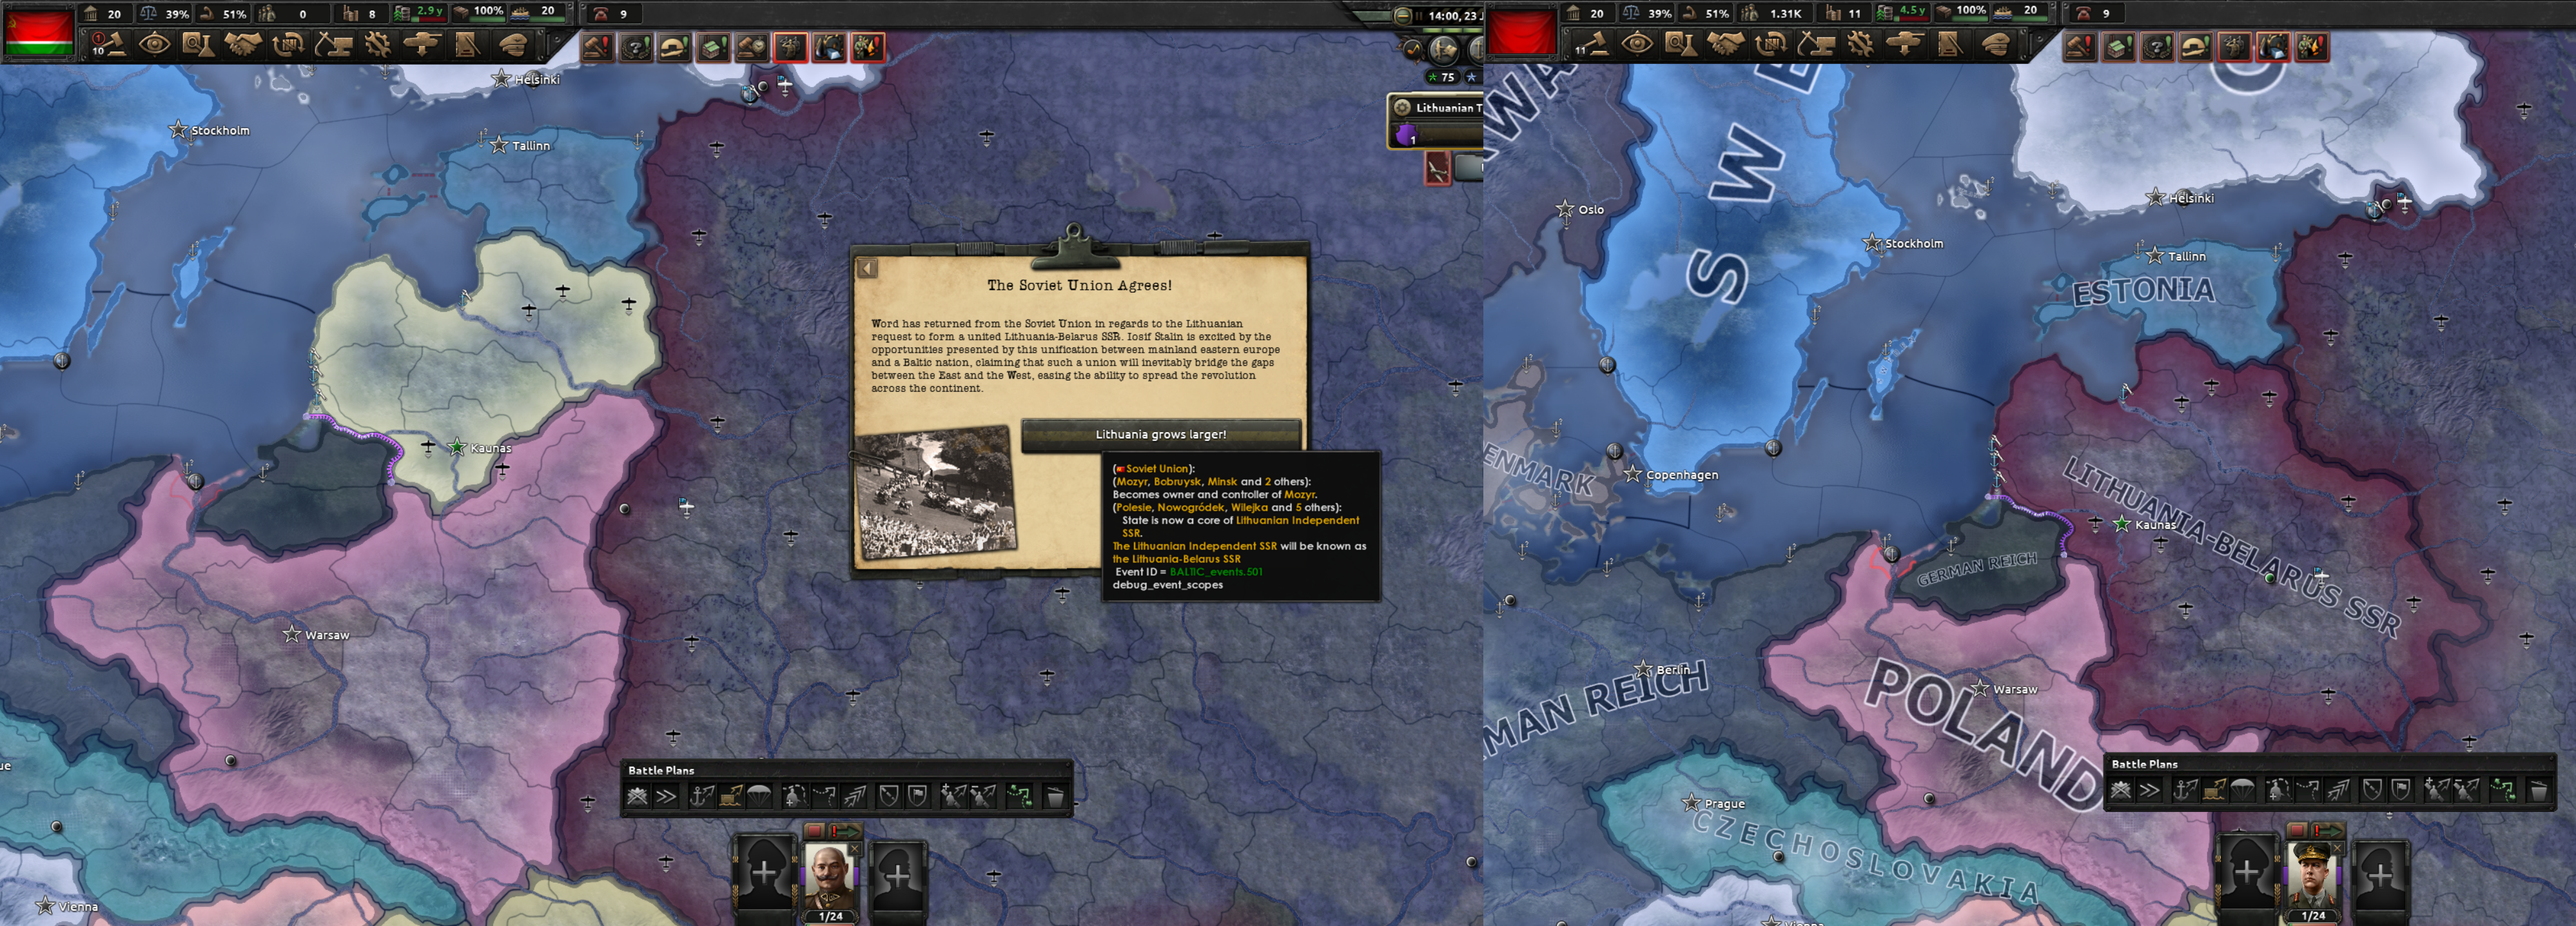 Lithuania_Belarus_Soviets.png